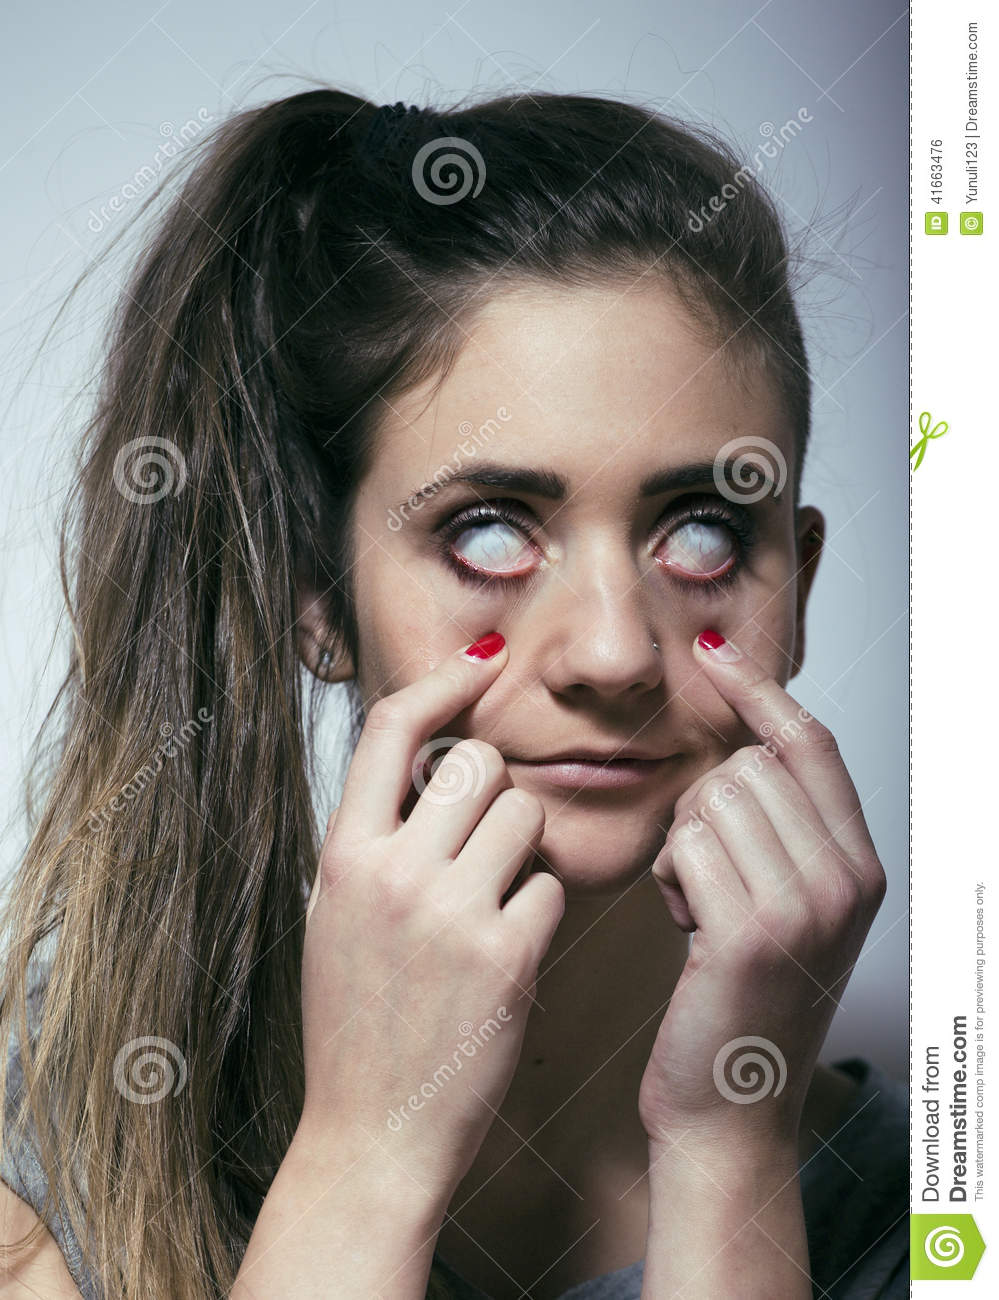 Young woman drug addict stock photo. Image of computer ...